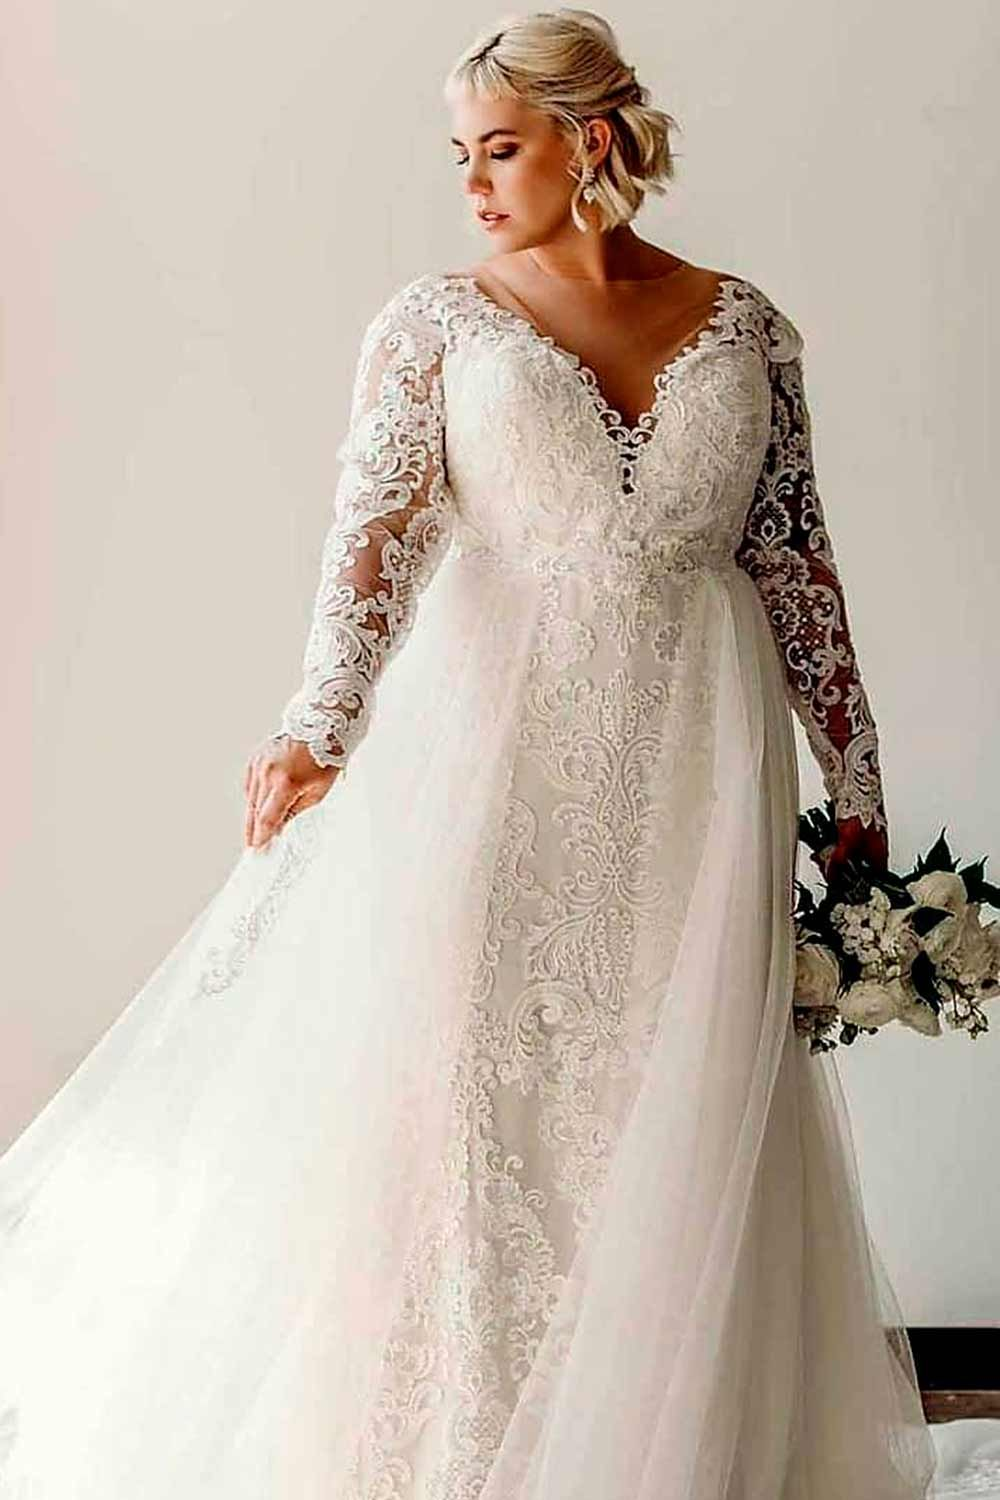 Plus Size Wedding Dresses For The Most Beautiful And Curvy Brides Plus Size Wedding Dresses With Sleeves Plus Wedding Dresses Wedding Dress Long Sleeve [ 1500 x 1000 Pixel ]